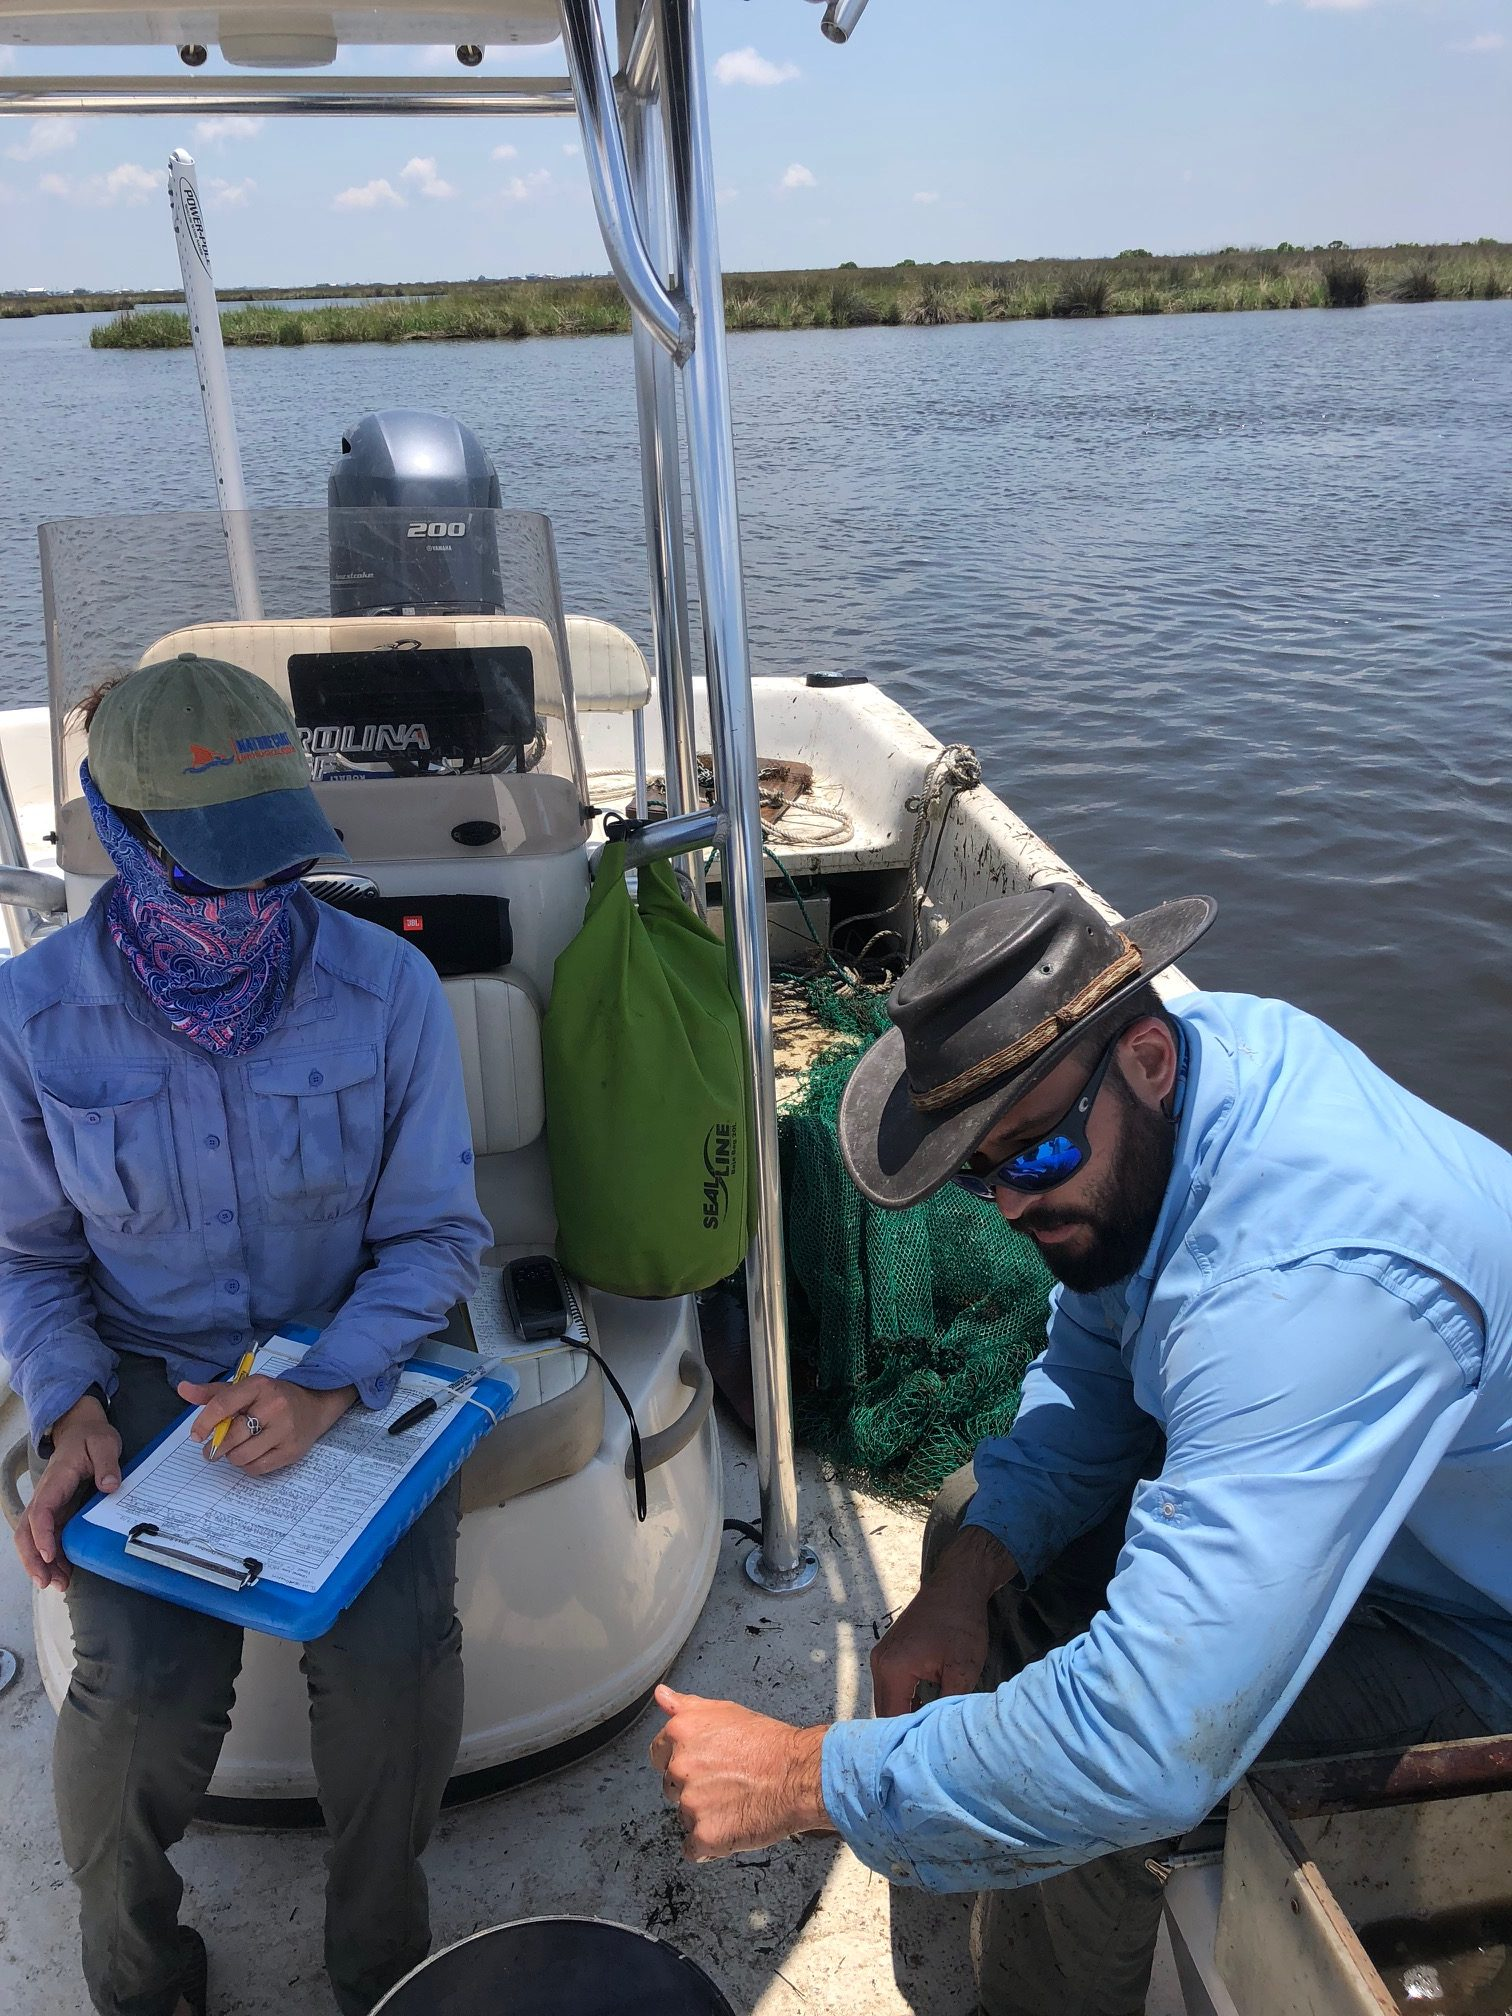 UF researchers take data of species abundance, length, and biomass on a recent sampling trip. Photo credit: C. Martin